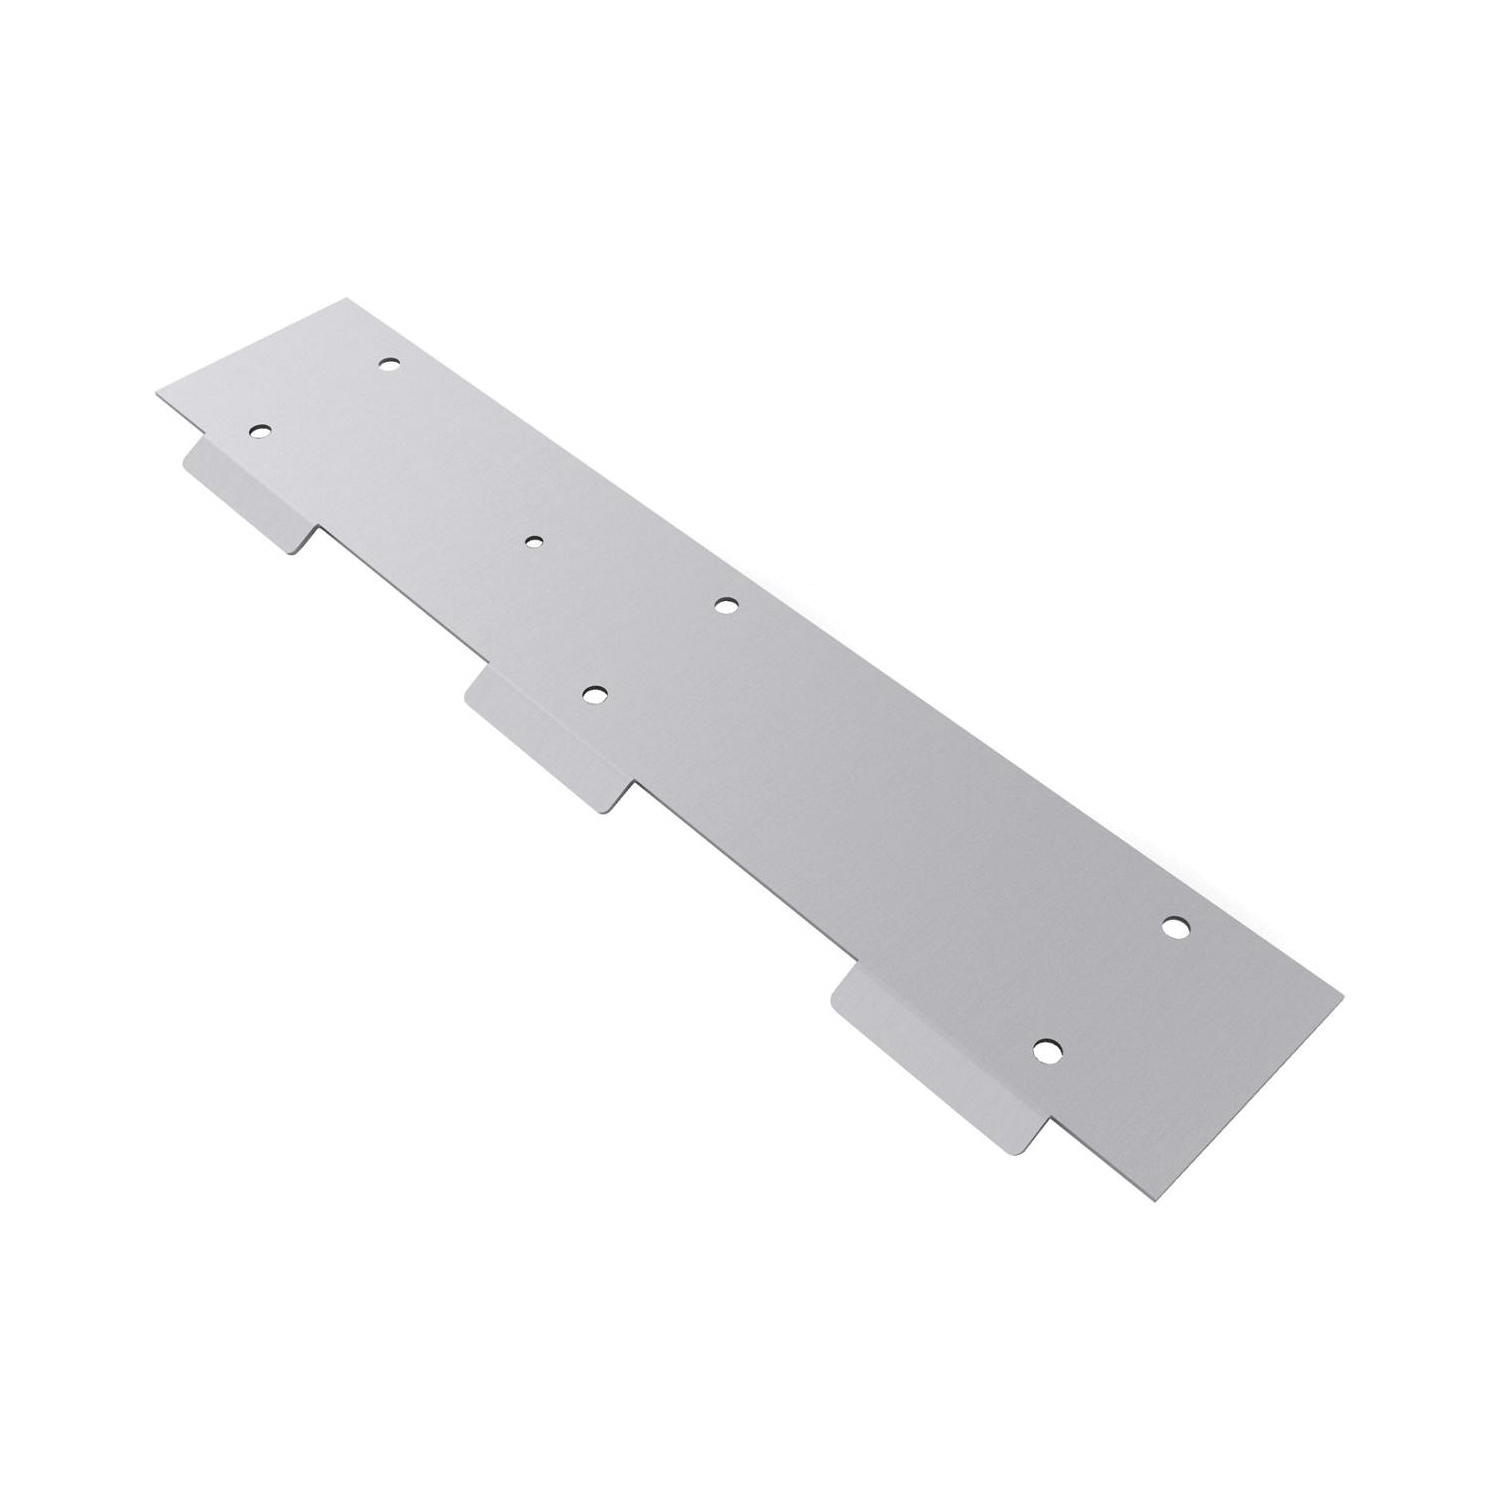 Elkay 28401C LKC/HT Replacement Hanger Bracket, For Use With EZ Series Water Cooler